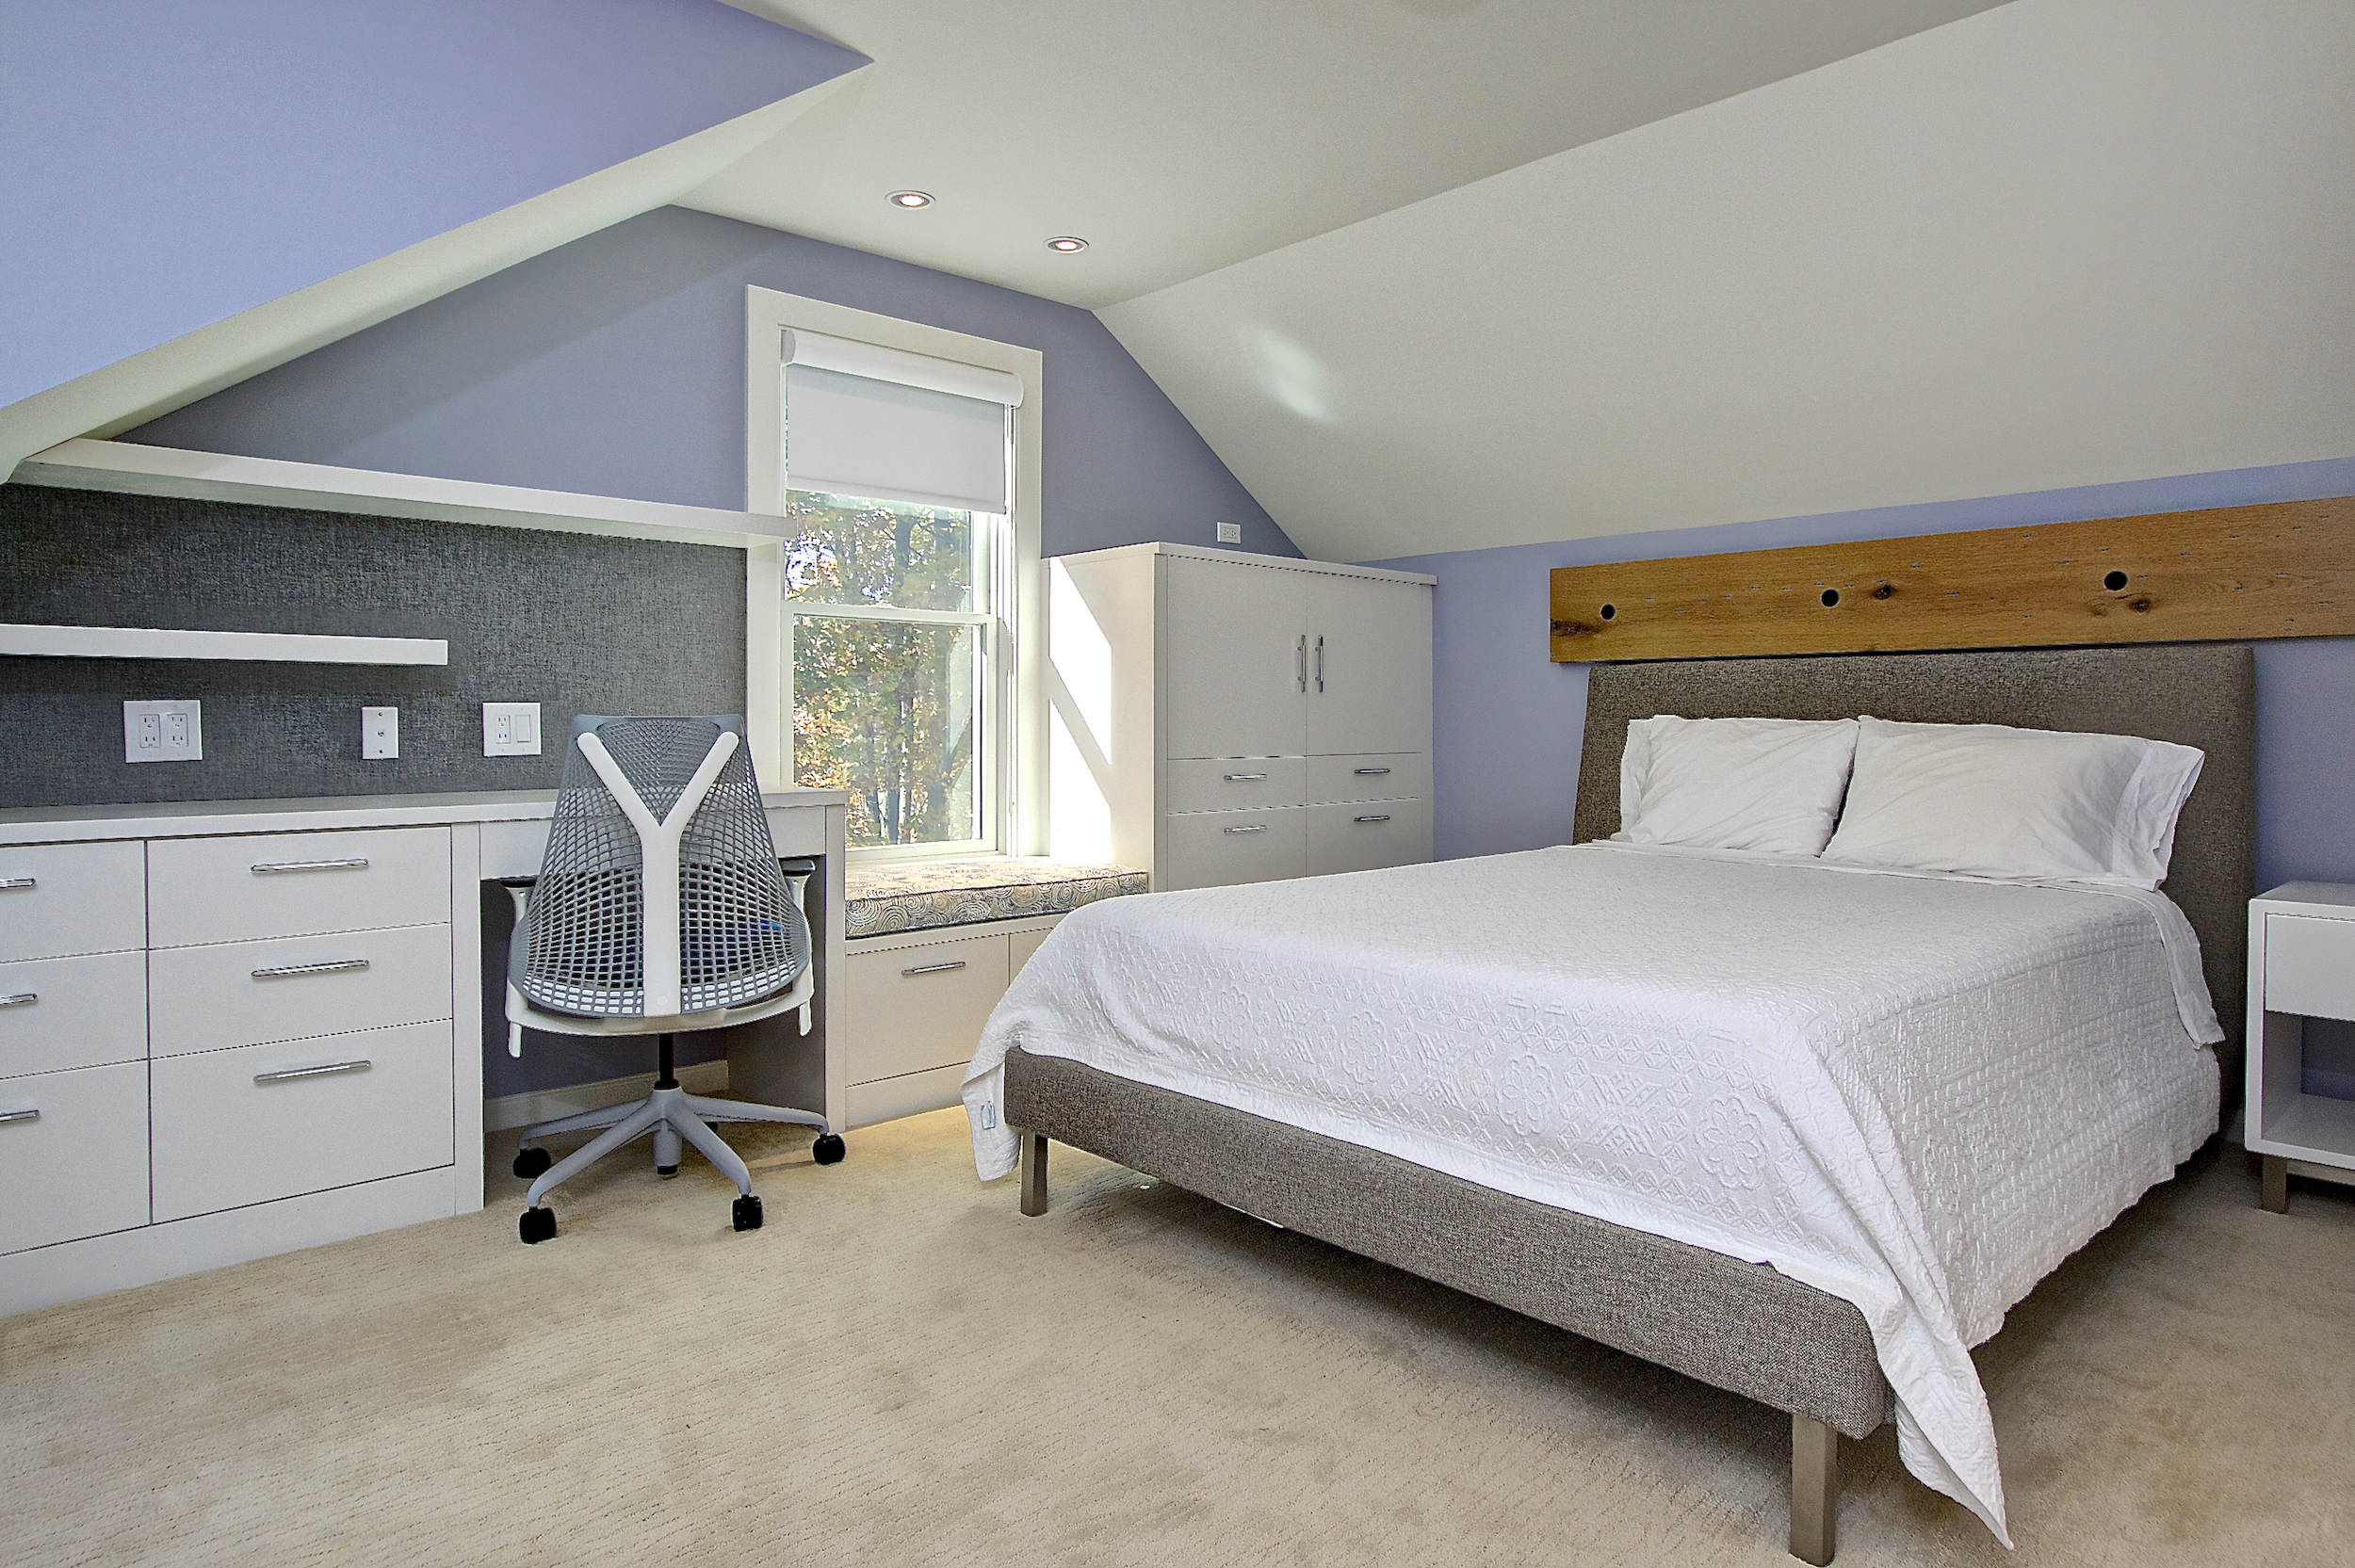 2-KitchenVisions-Other-Spaces-Attic-Bedroom-Retreat-Westwood.jpg